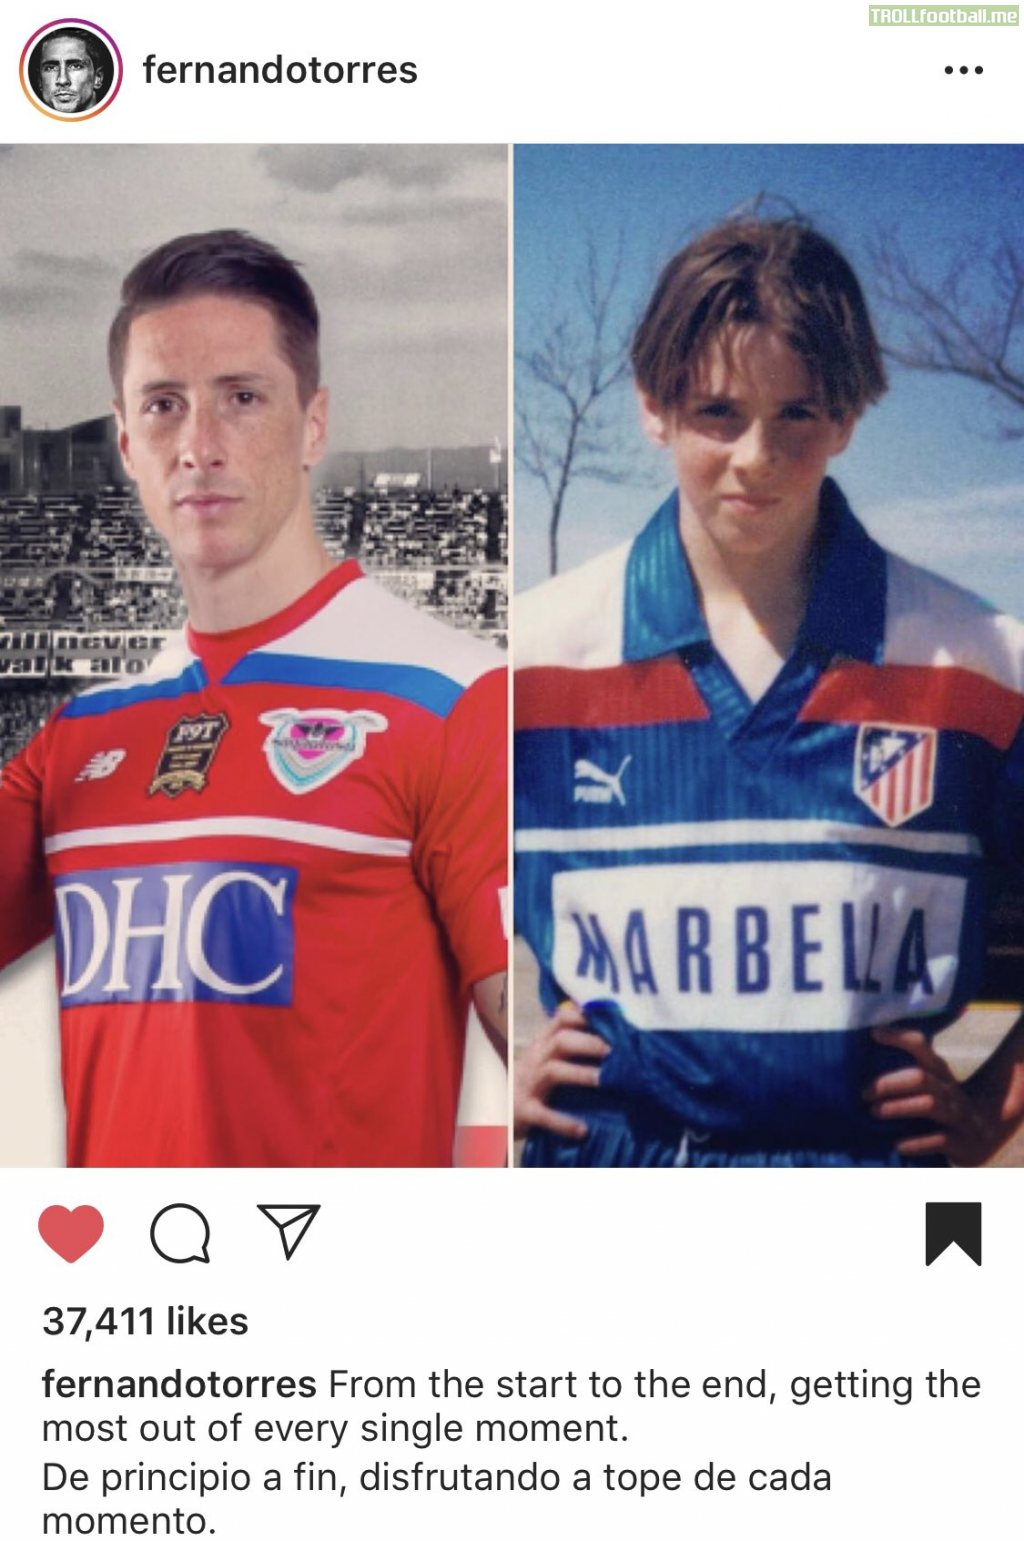 Fernando Torres finishes his career in a jersey like the one in which he started his career